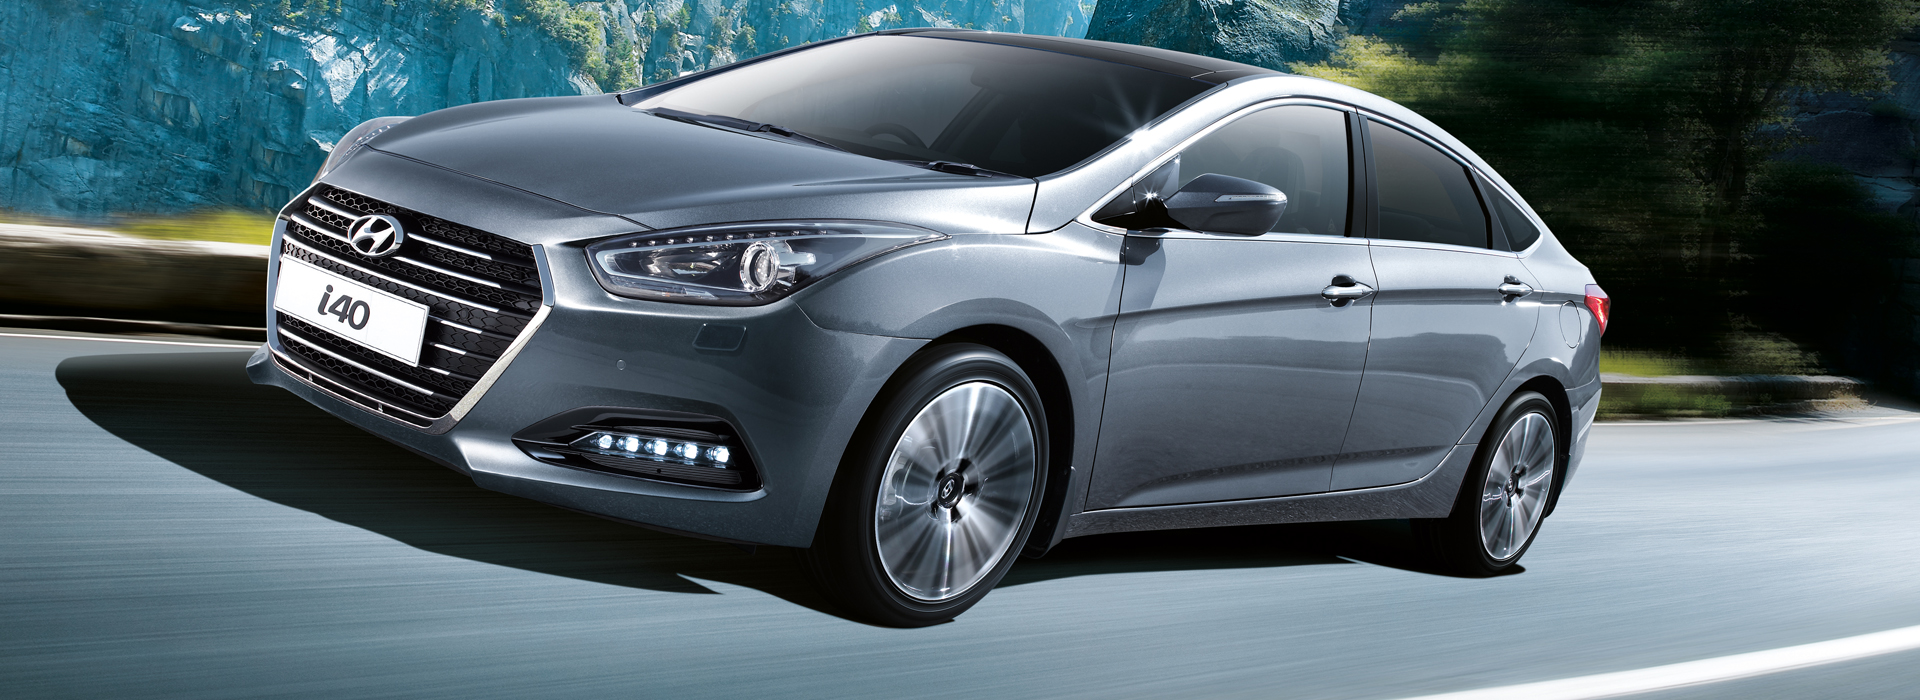 Hyundai i40 taxis for sale cab direct for Hyundai motor finance fax number